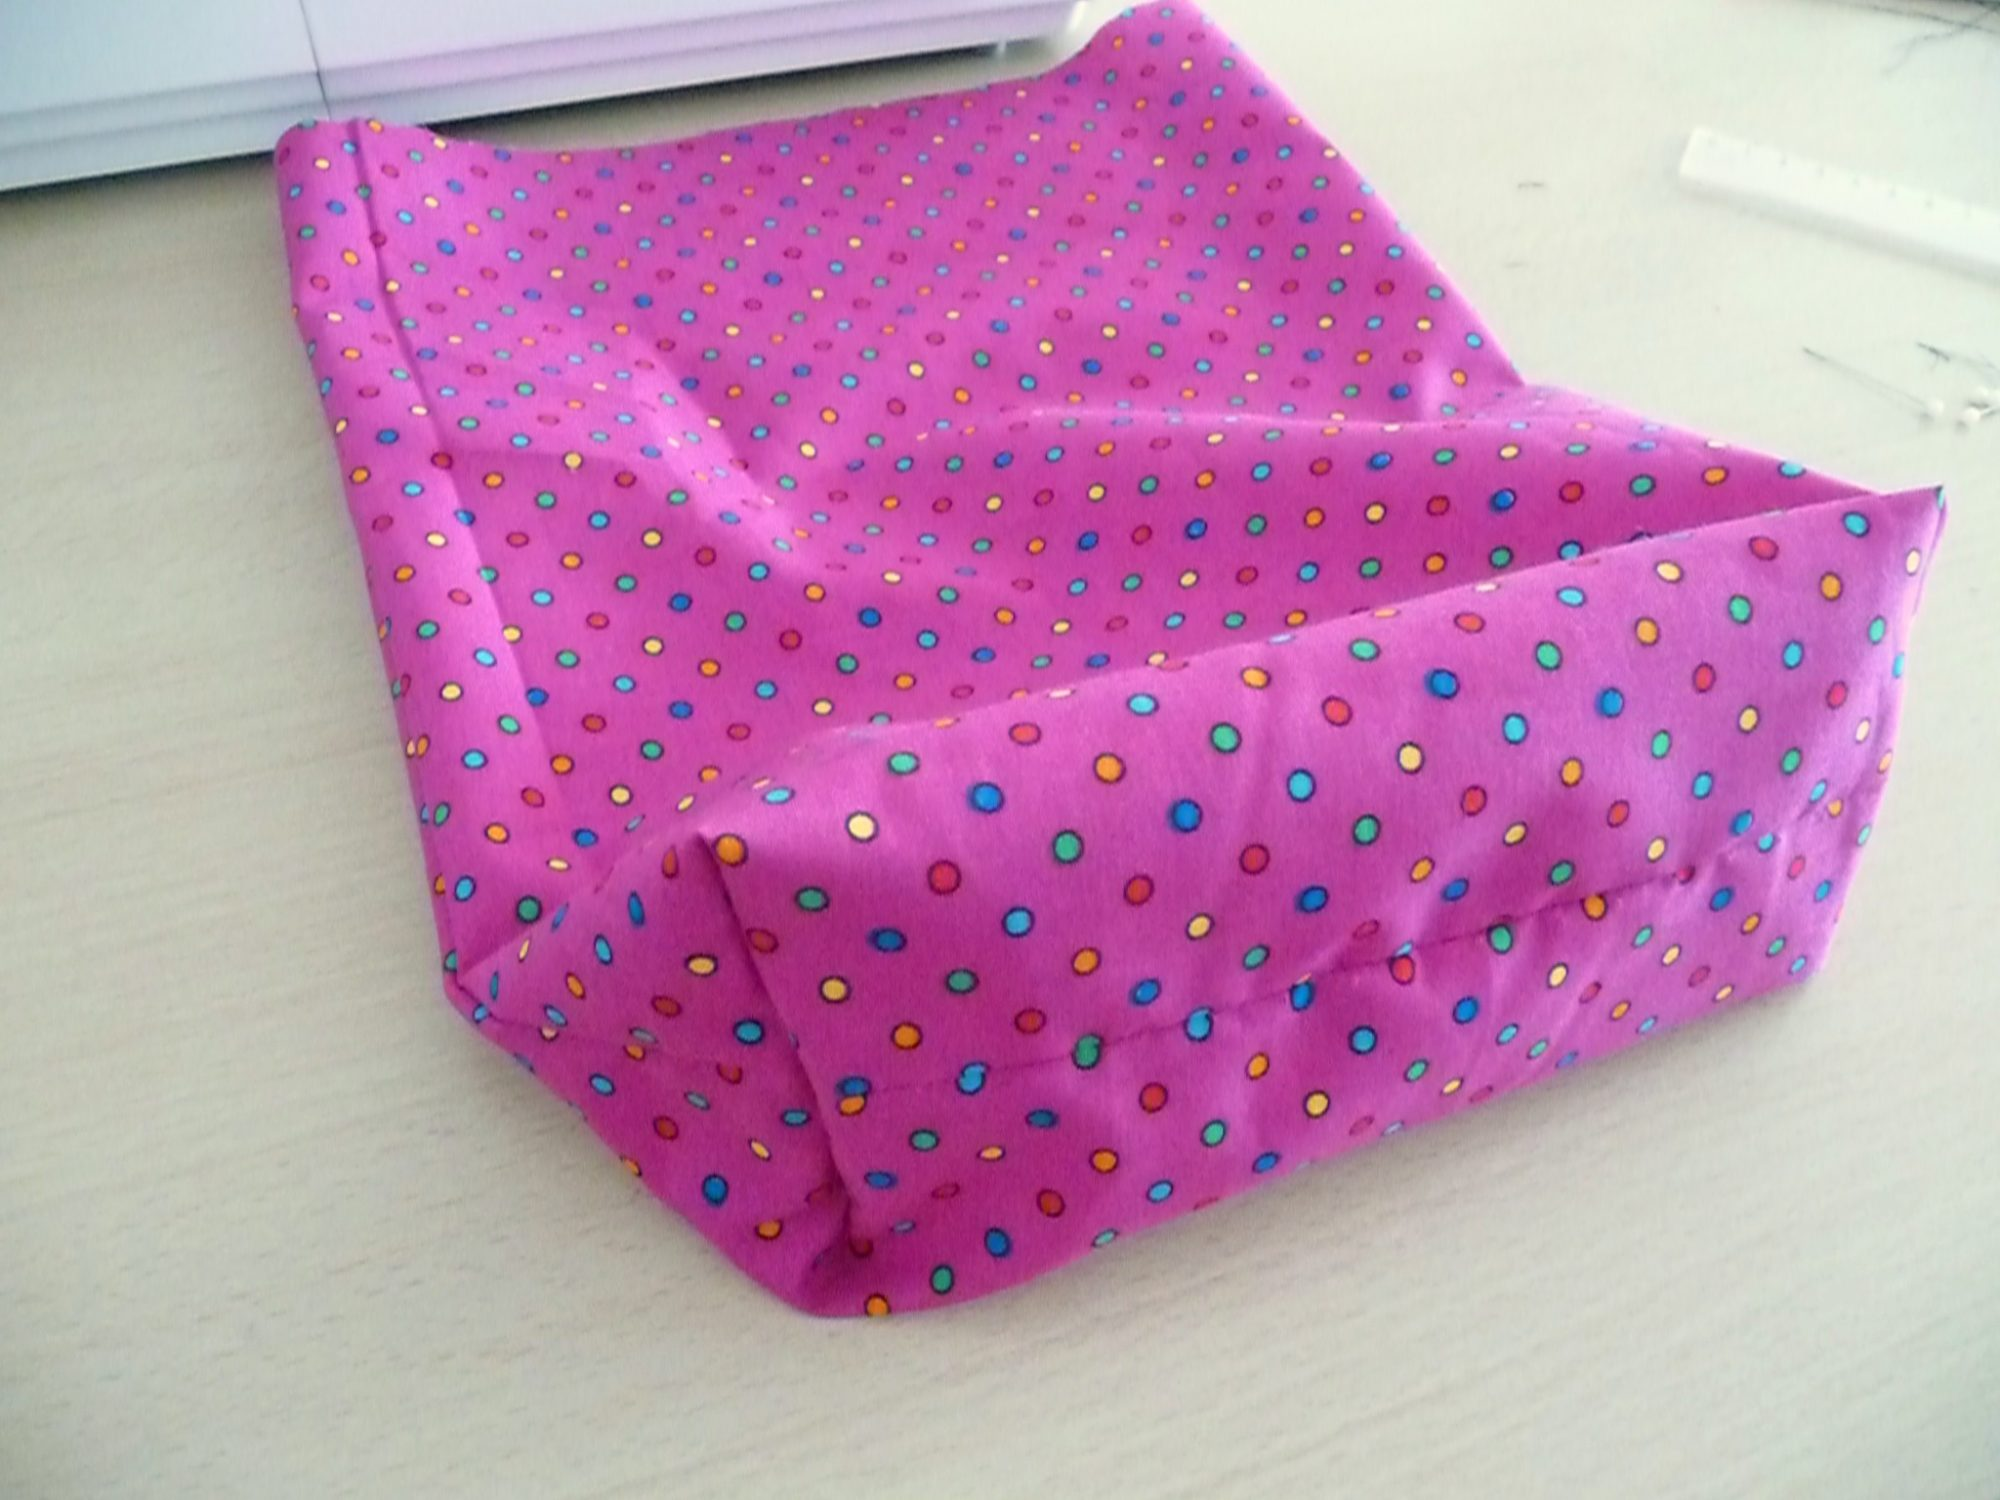 Box the lining